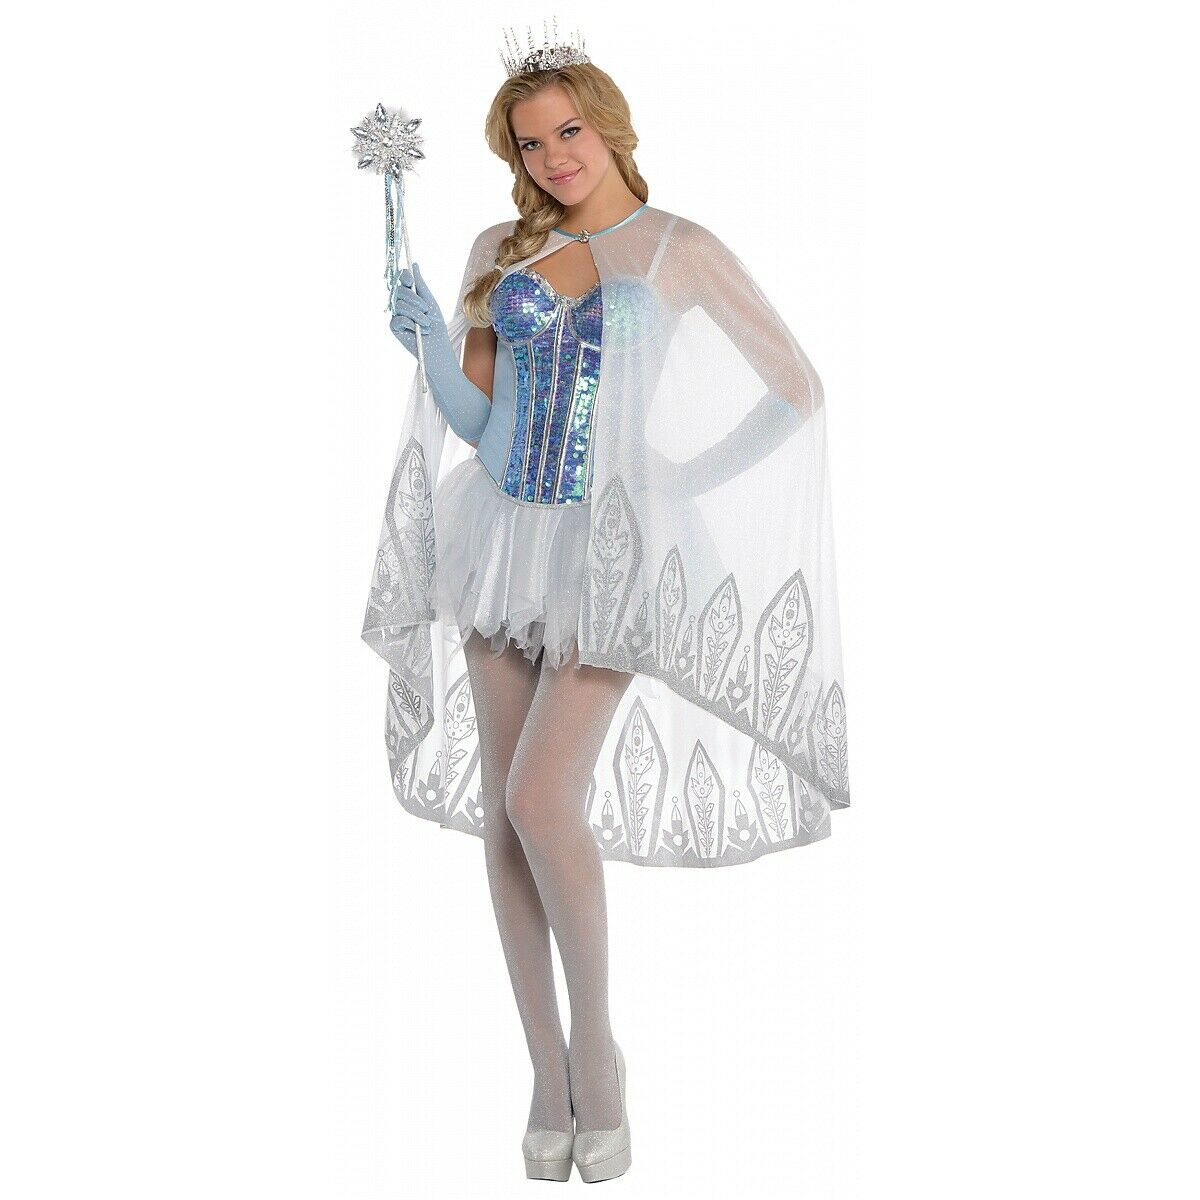 Shimmering cape Costume Accessory Adult Halloween